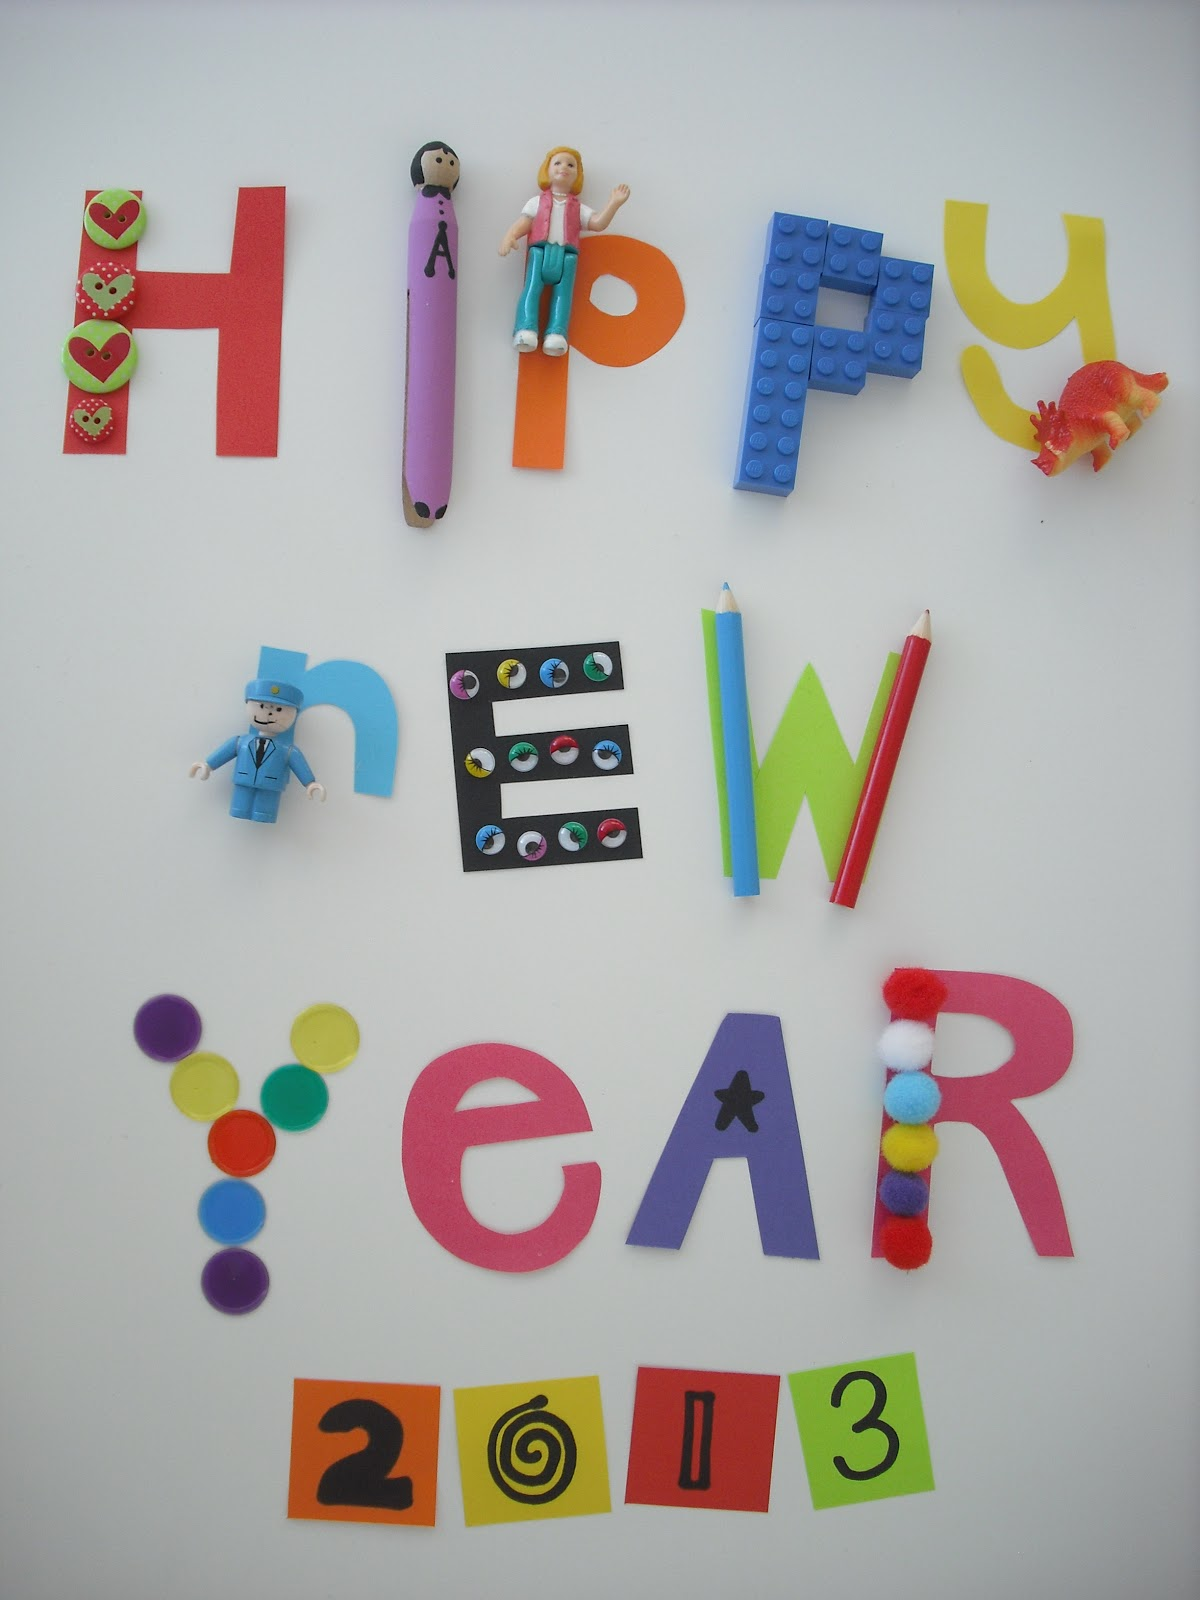 Uncategorized Happy New Year Decoration Ideas happy new year decoration ideas photograph i wish you a really wonderful ahead with lots of